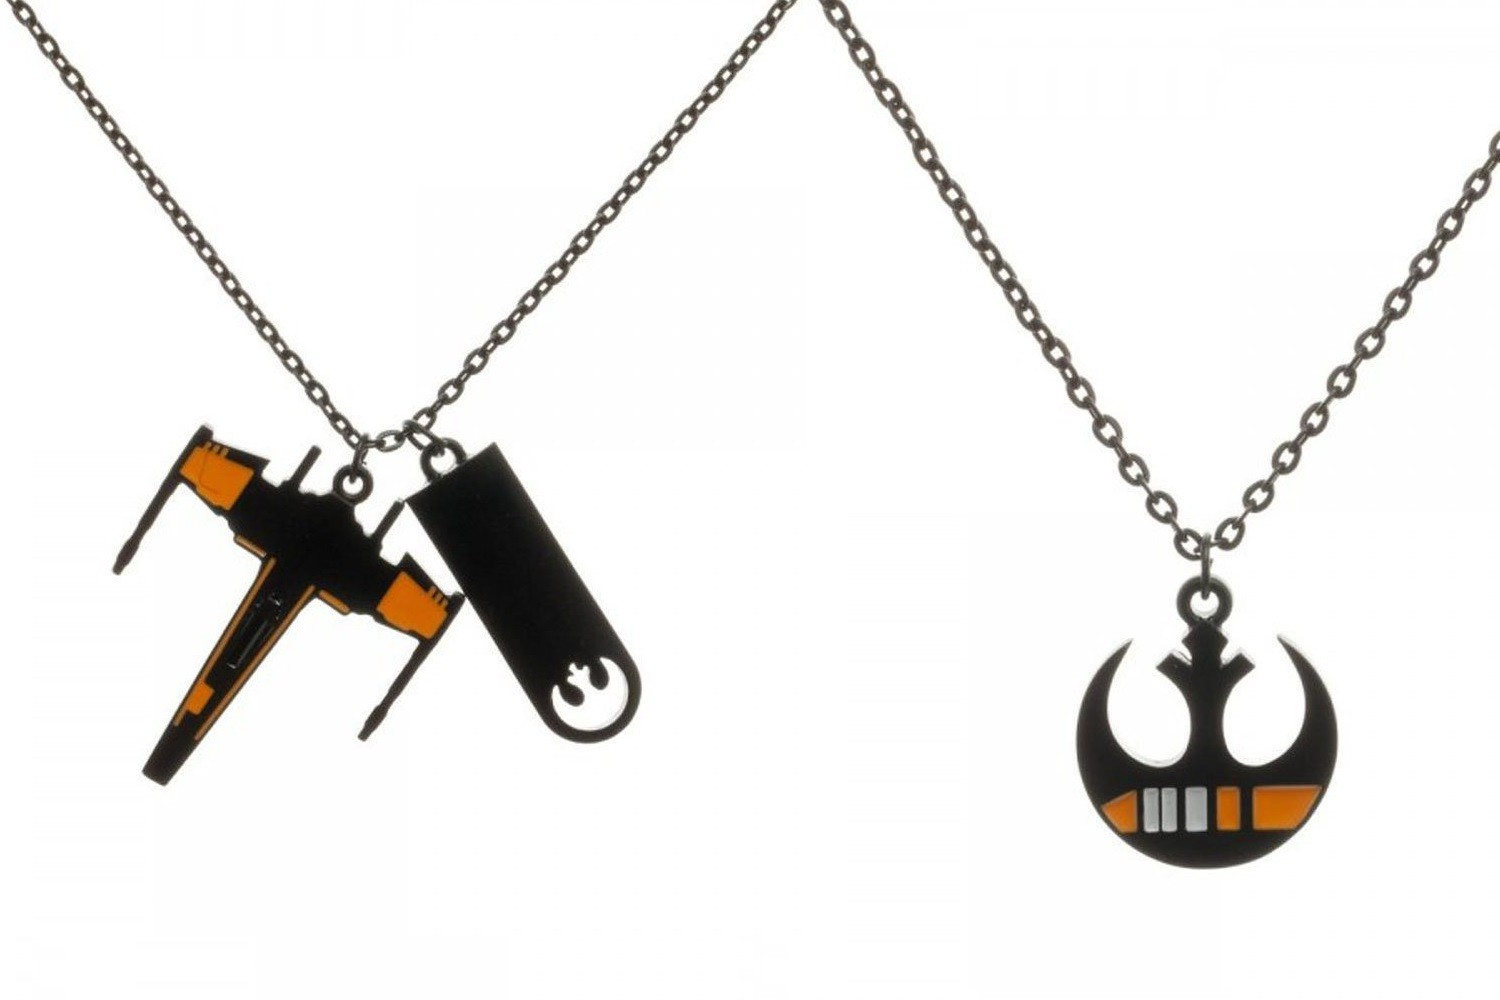 New Black Squadron themed necklaces